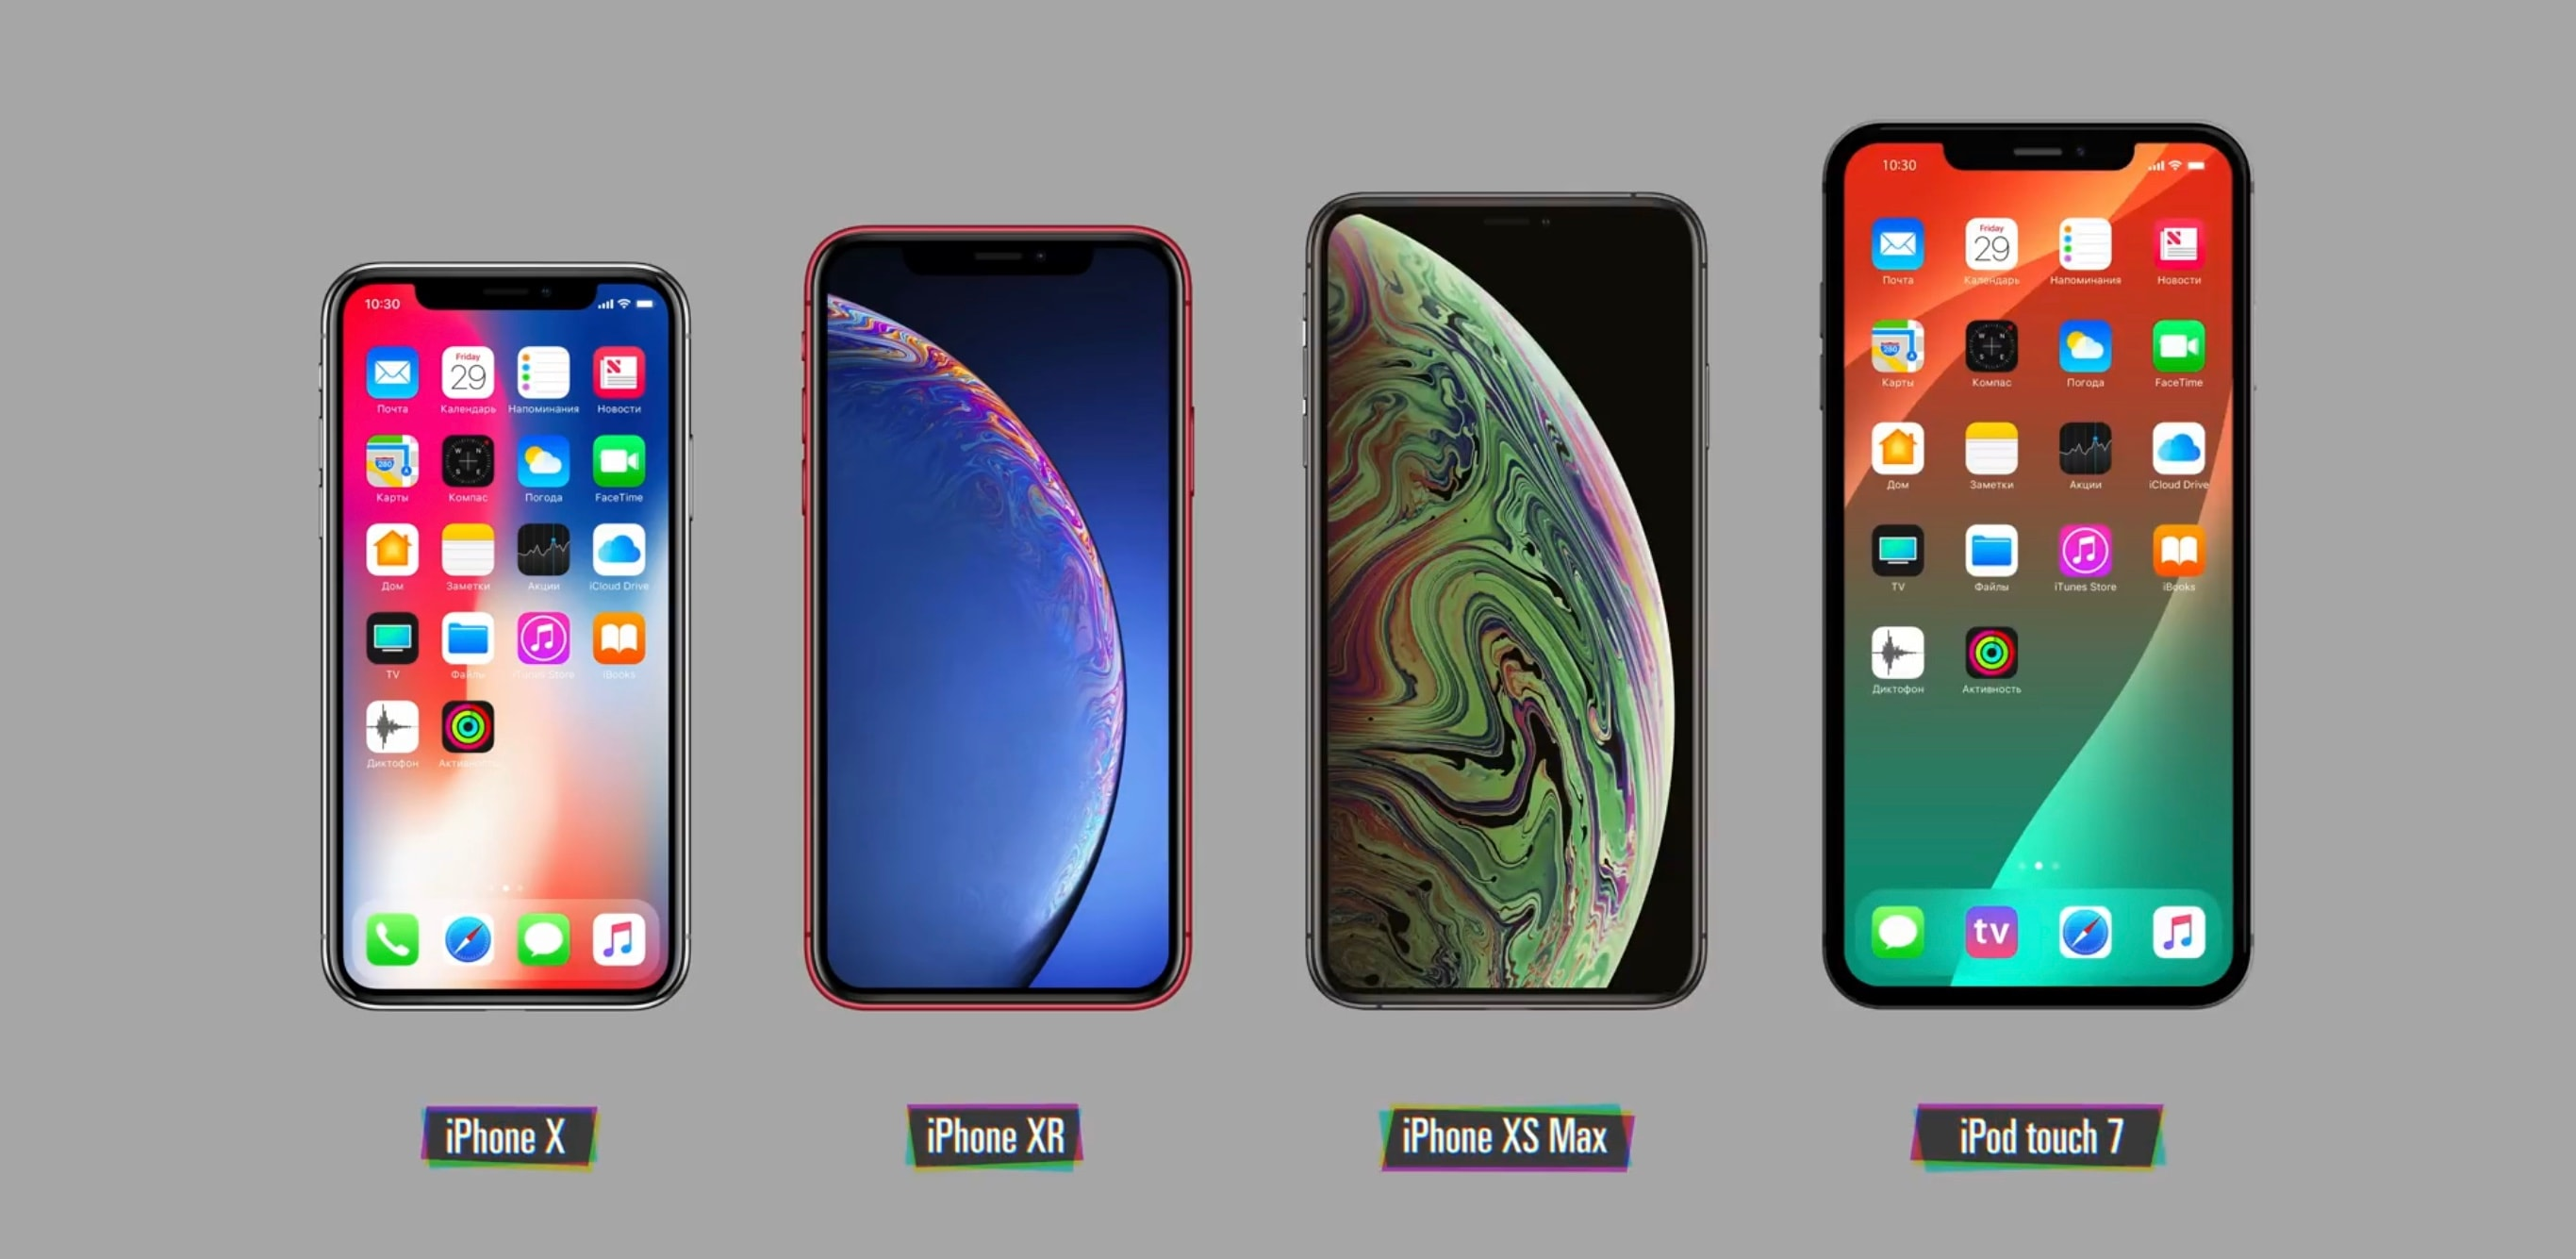 This concept iPod touch 7 would be even bigger than the iPhone XS Max.